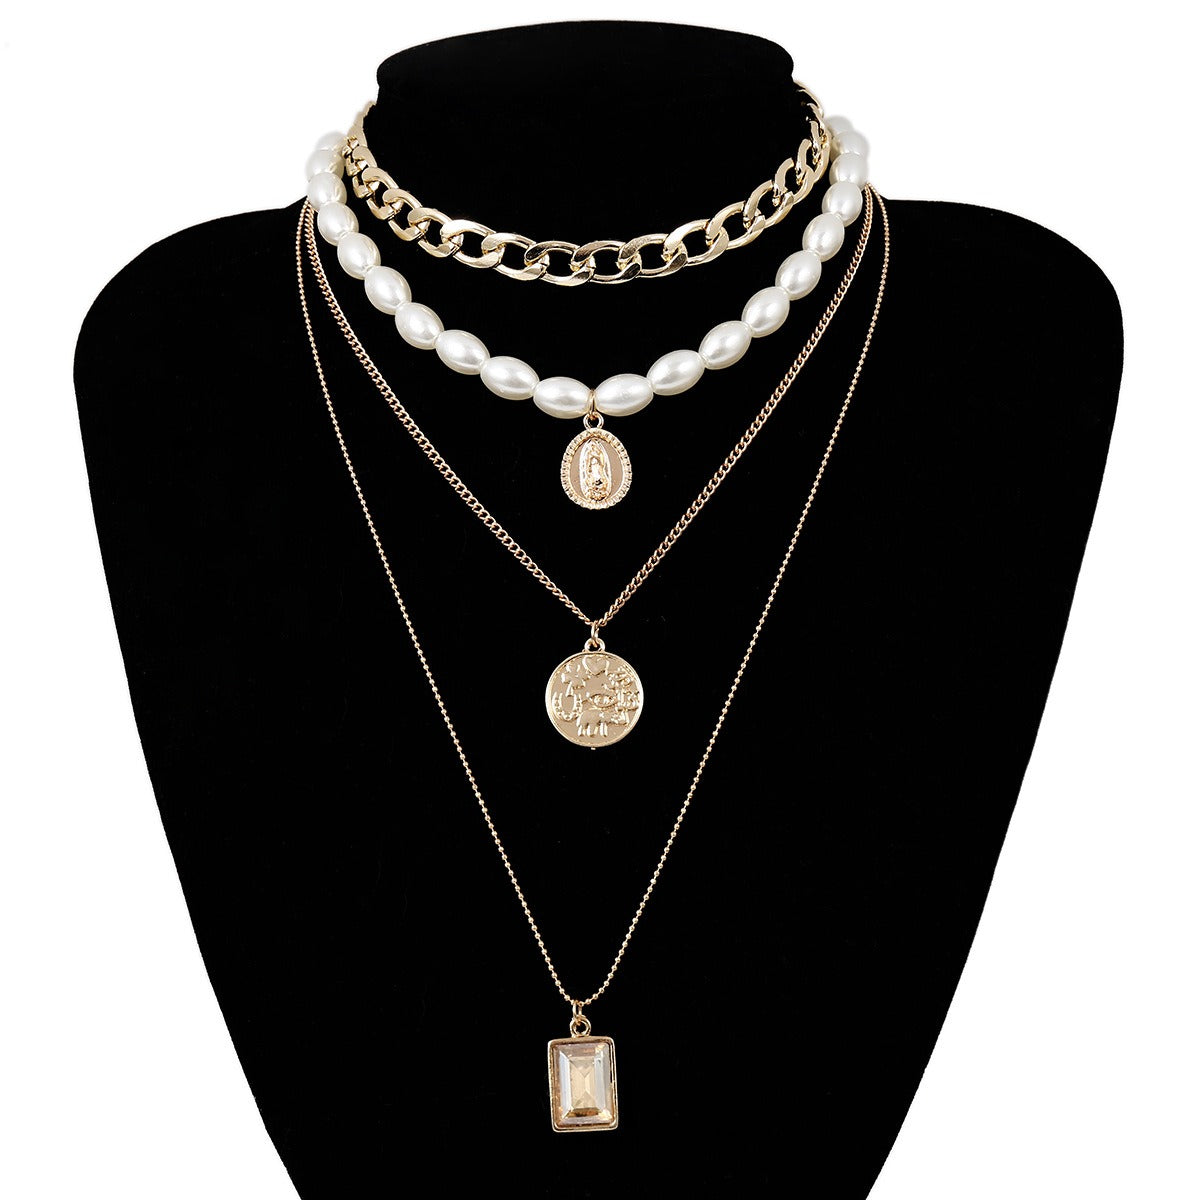 Vintage Coins Tassels Multi-layer Necklace